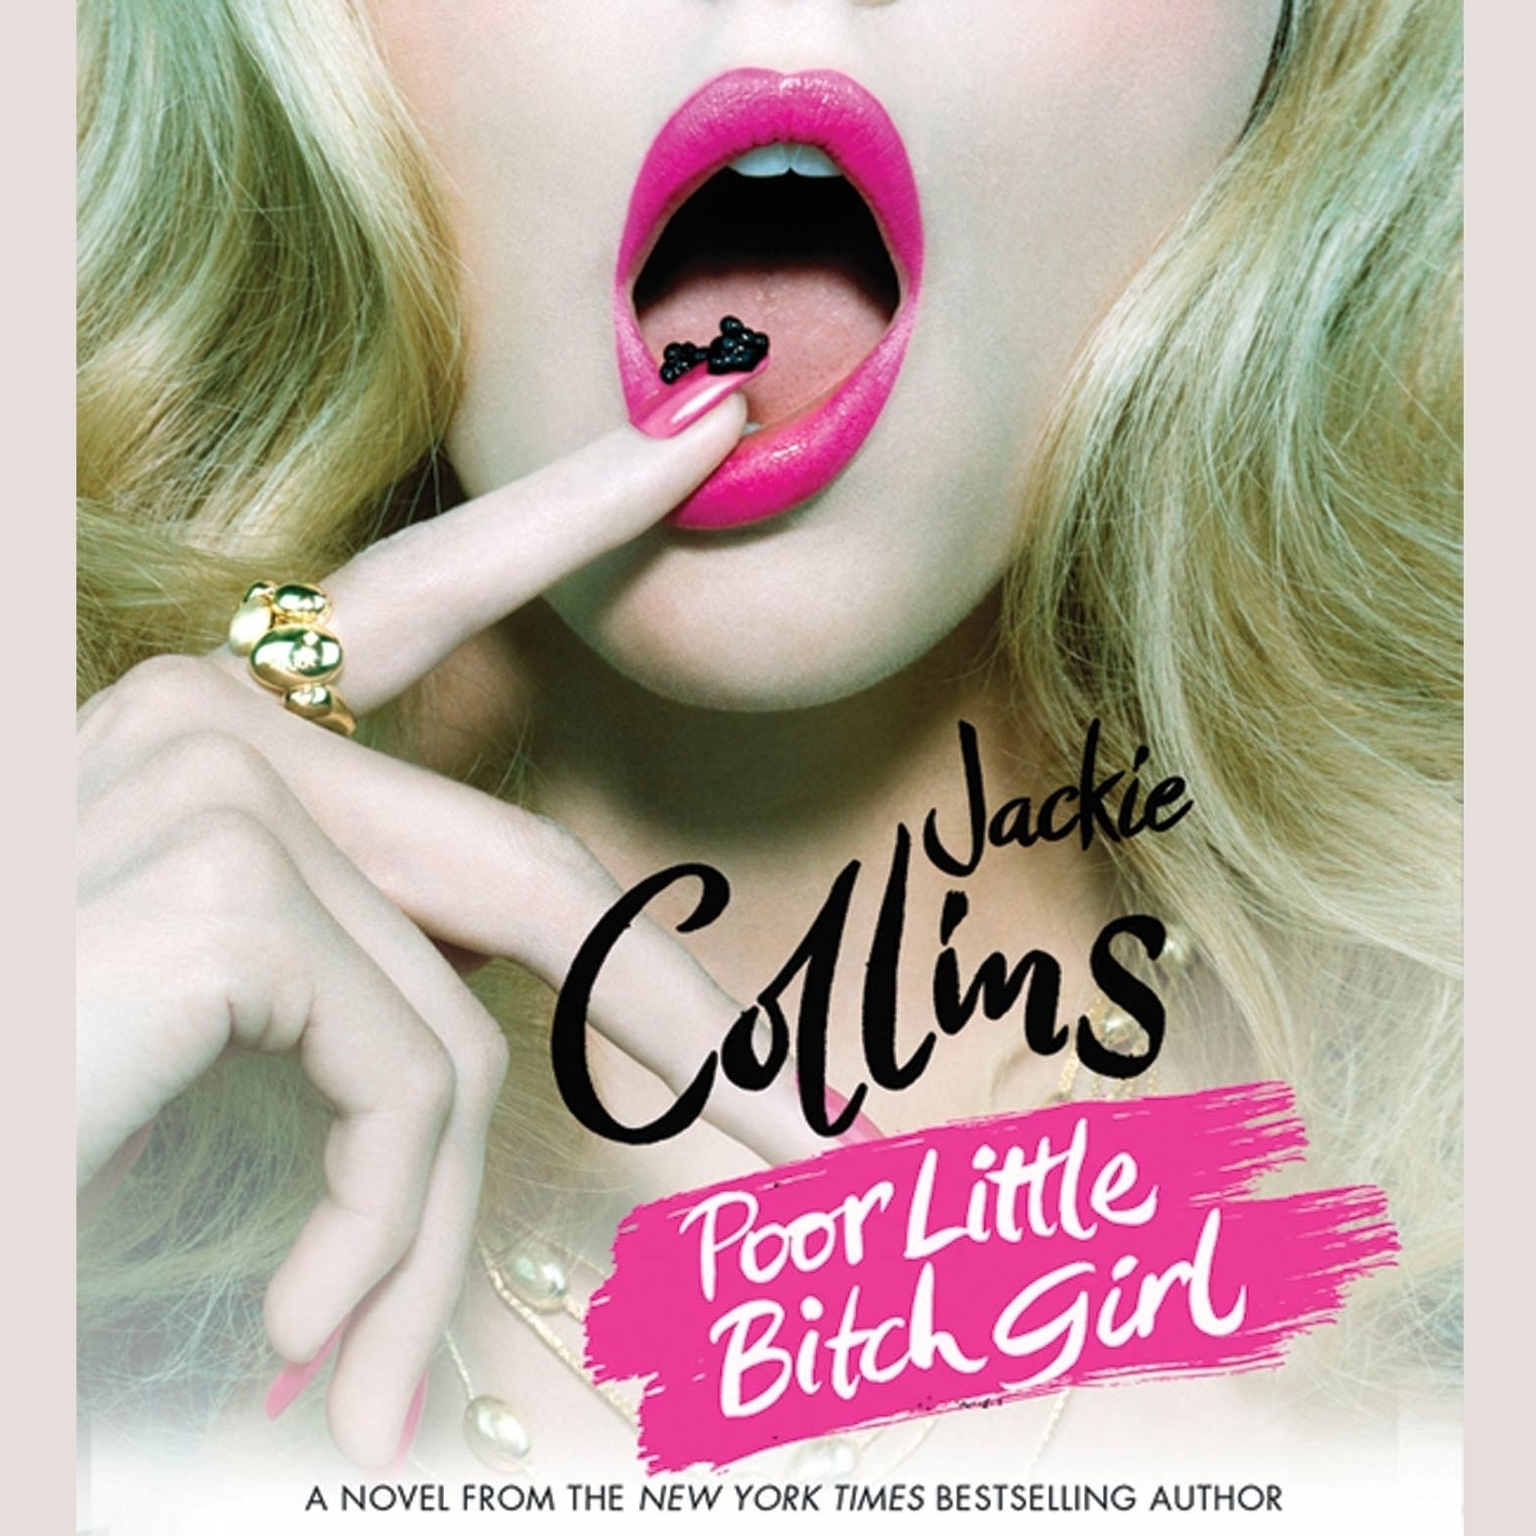 Poor Little Bitch Girl (Abridged) Audiobook, by Jackie Collins